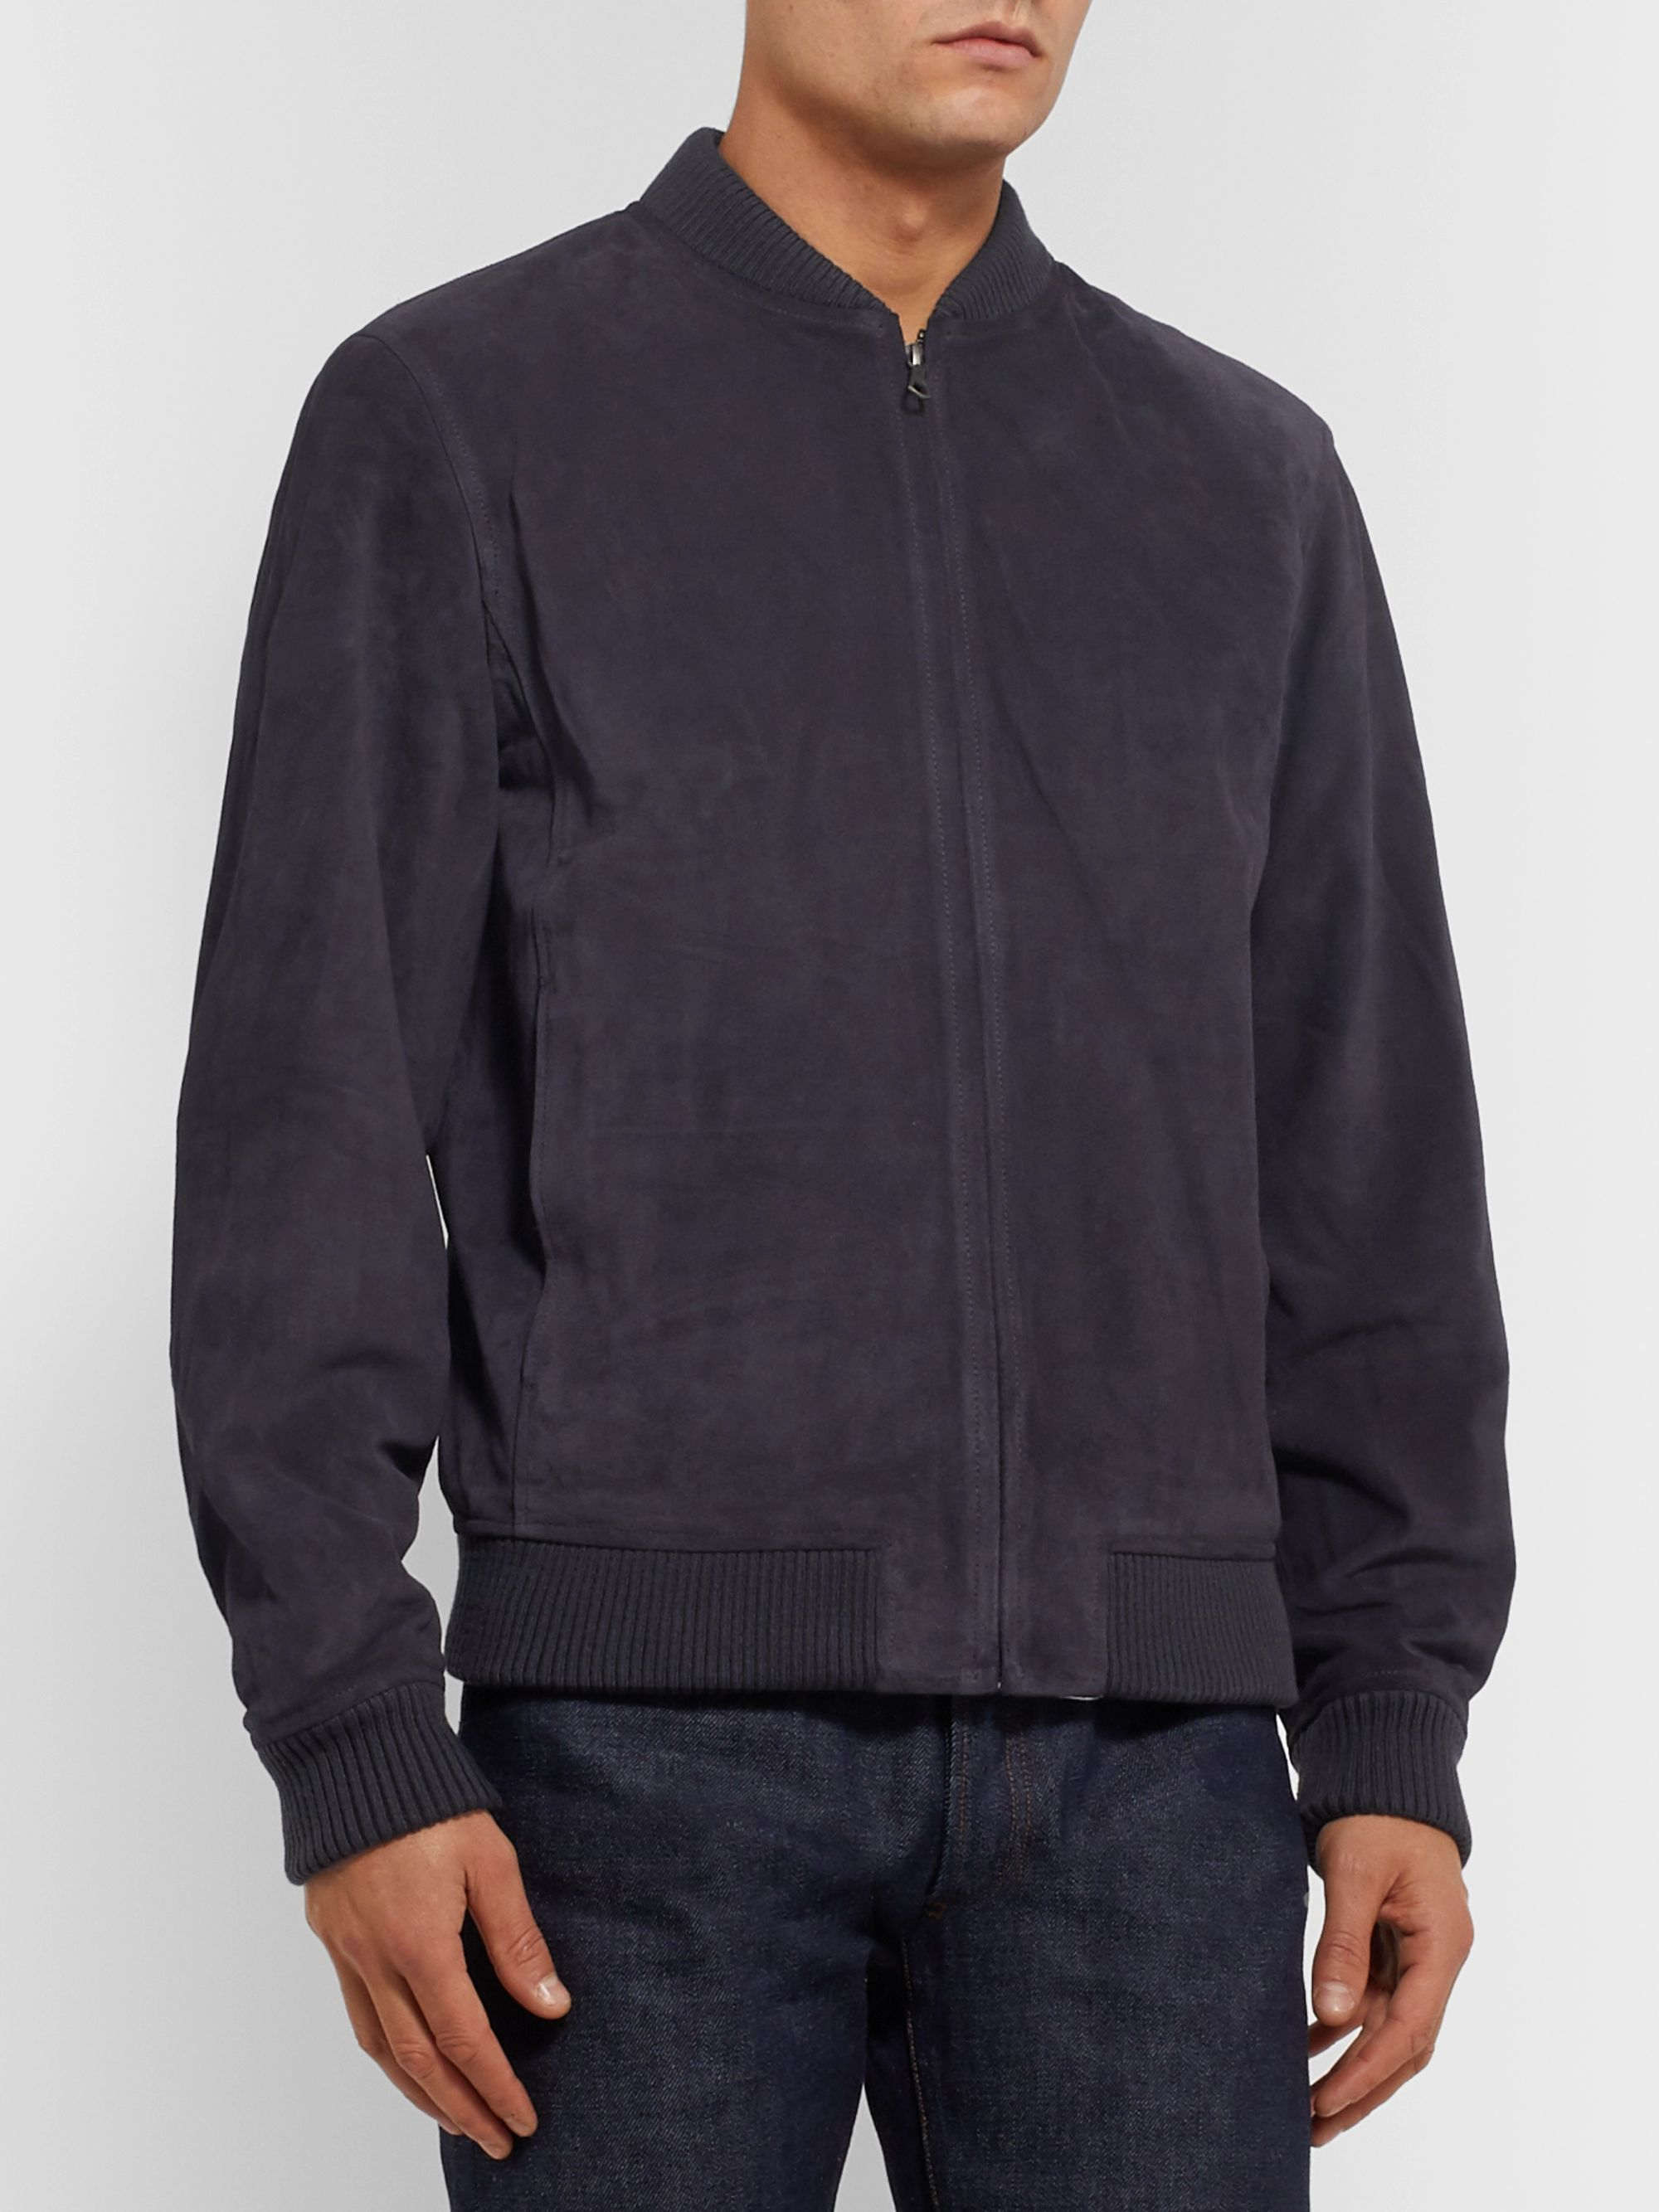 A.P.C. Bryan Suede Bomber Jacket